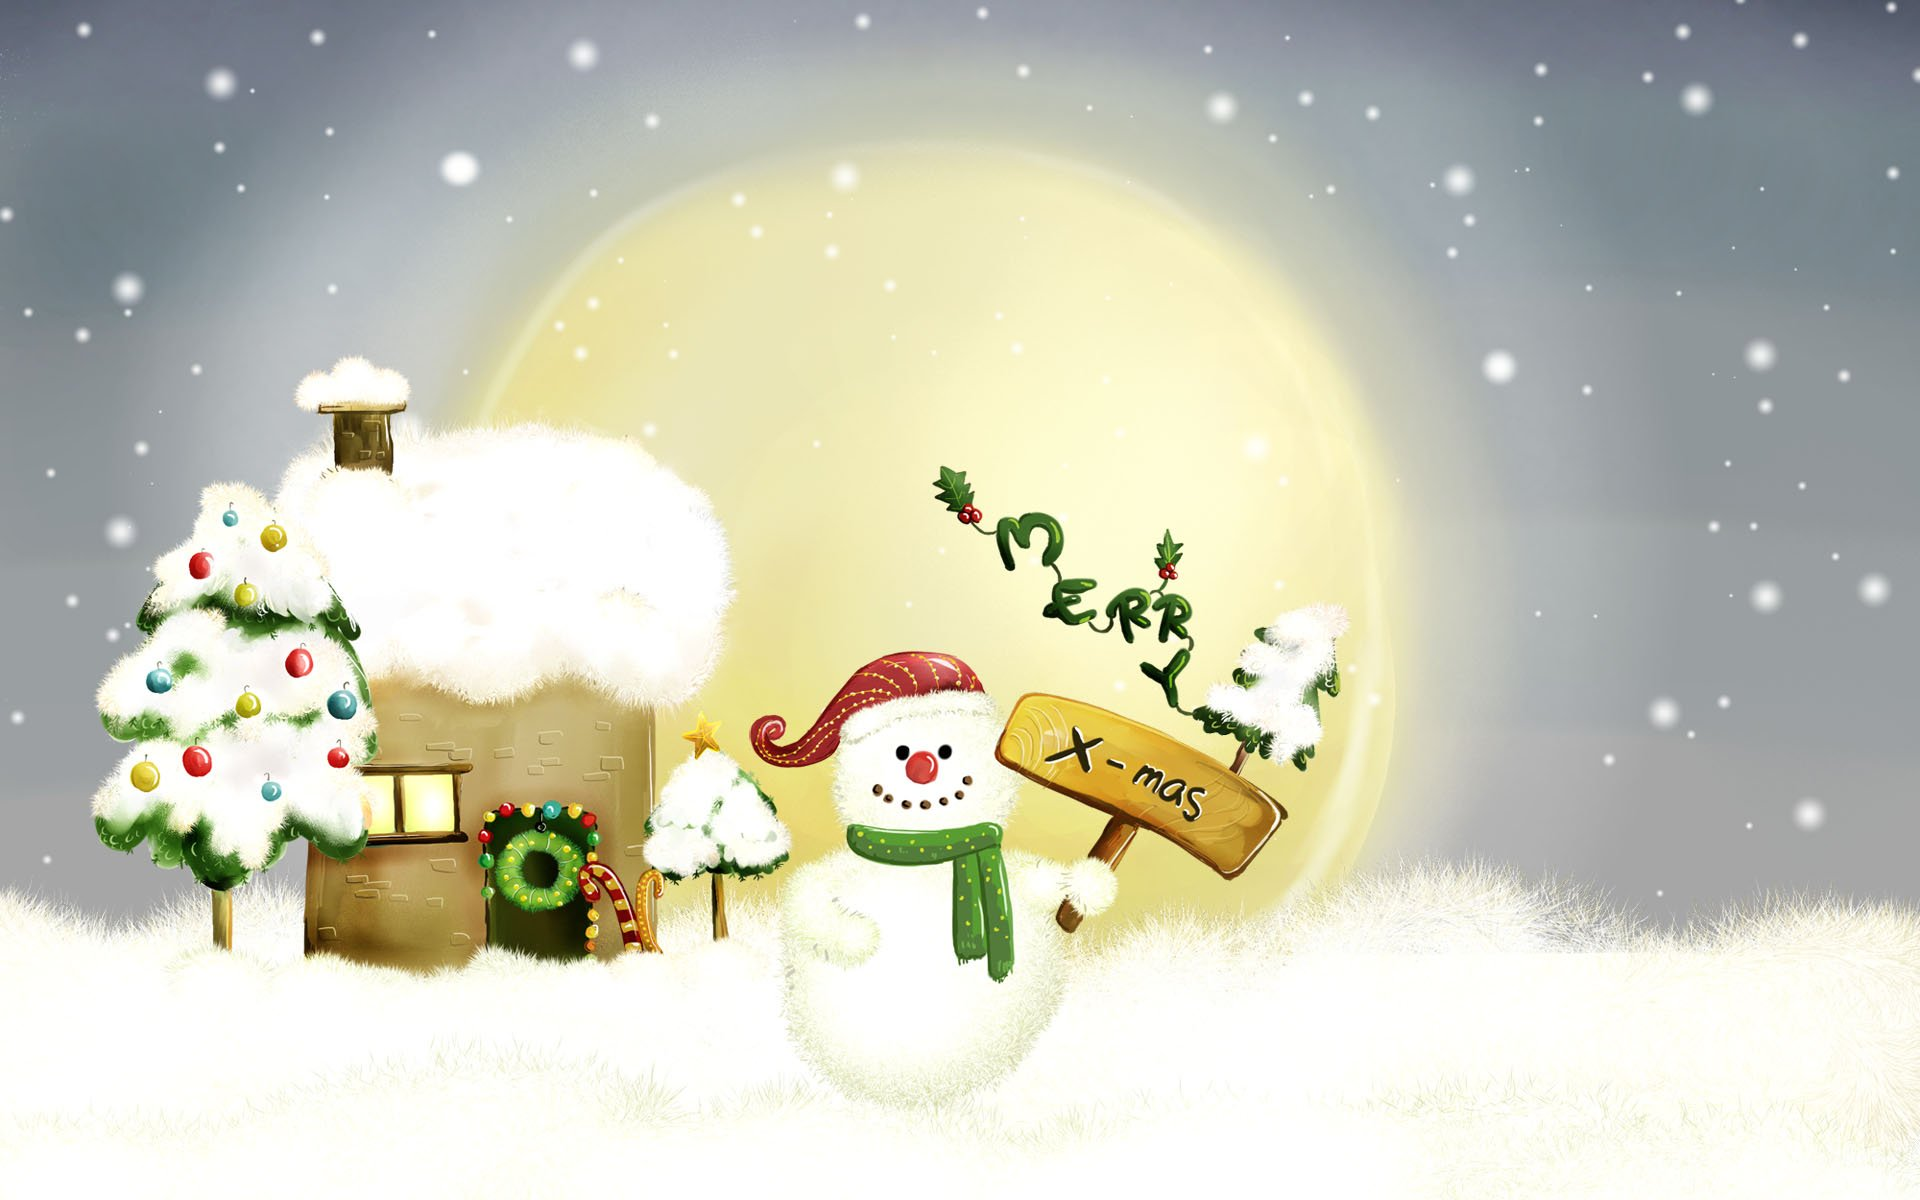 Christmas Cartoon Wallpapers | WallpapersIn4k net